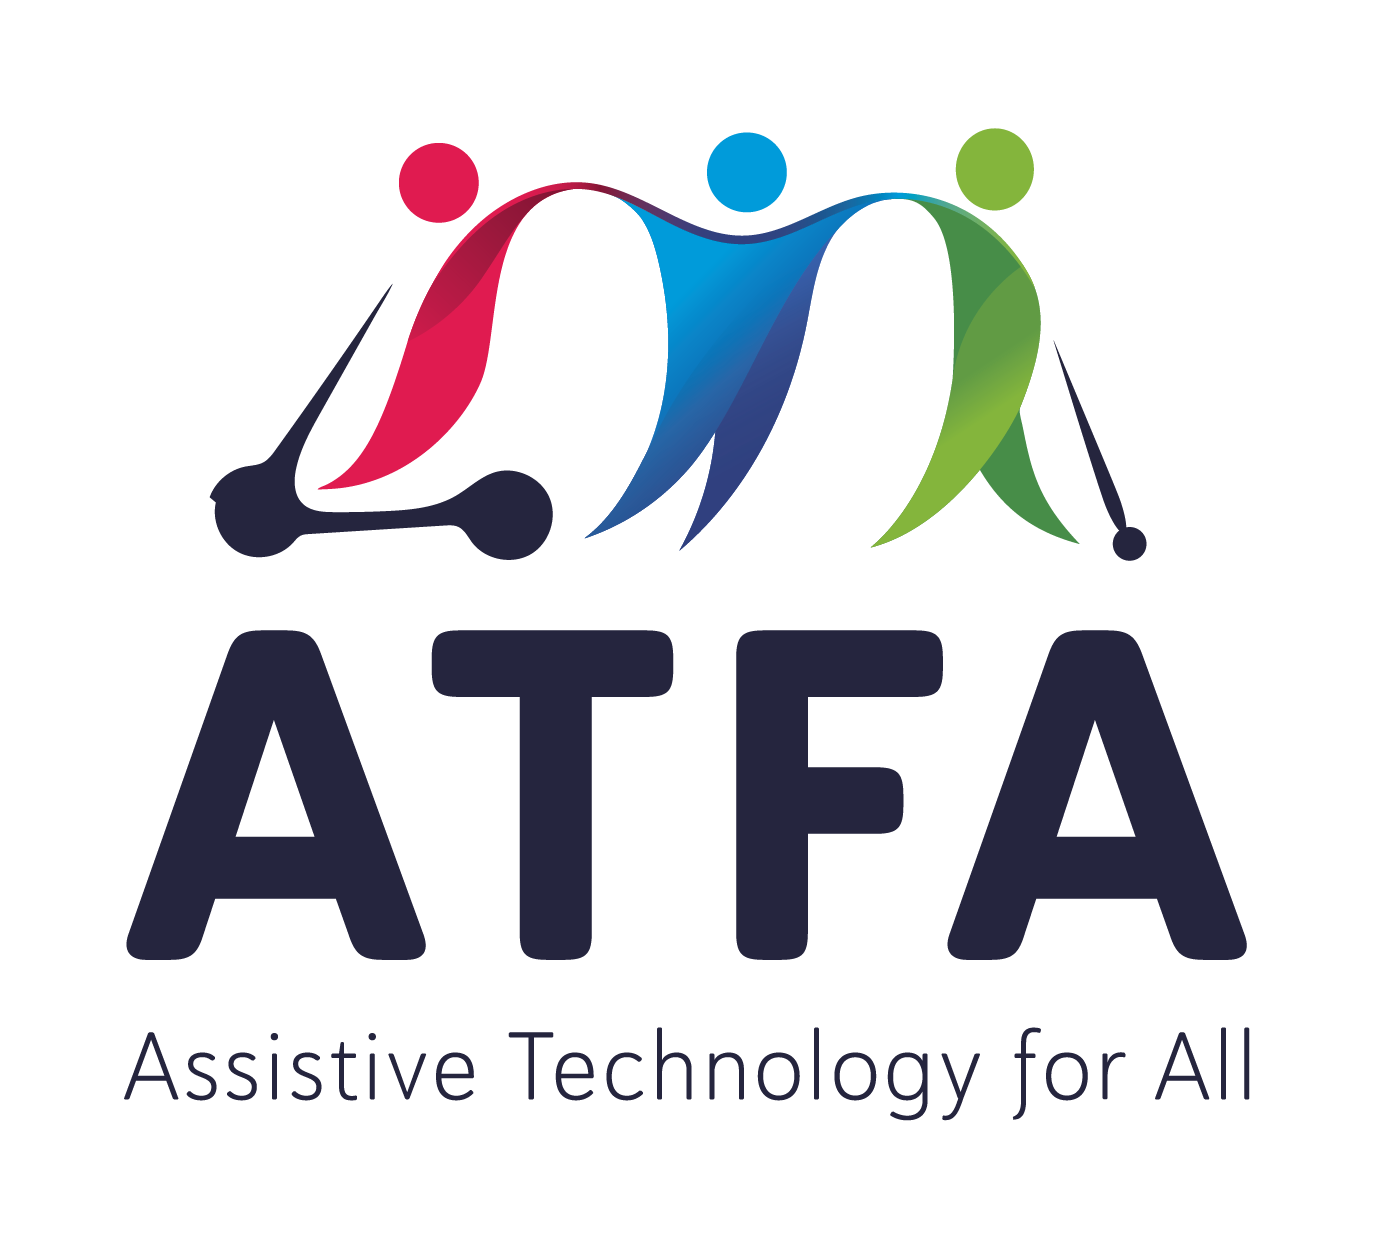 Assistive Technology for All, or ATFA, logo. Three interconnected figures, one using a mobility scooter and one using a cane., with ATFA written below.